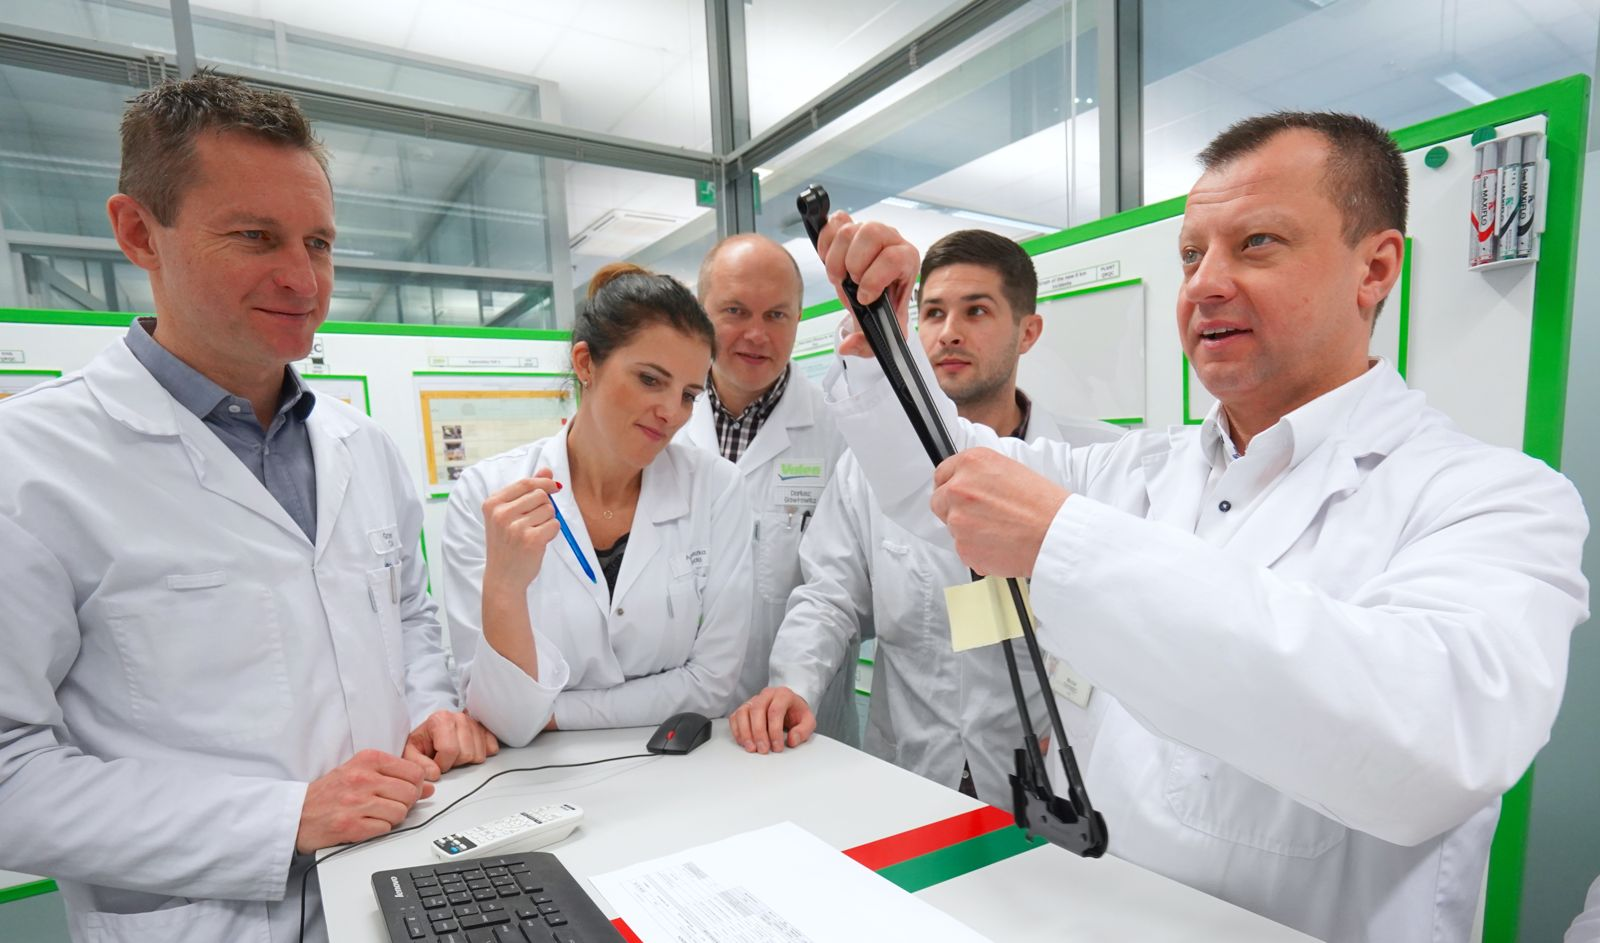 Valeo employees in a meeting in Poland Skawina plant